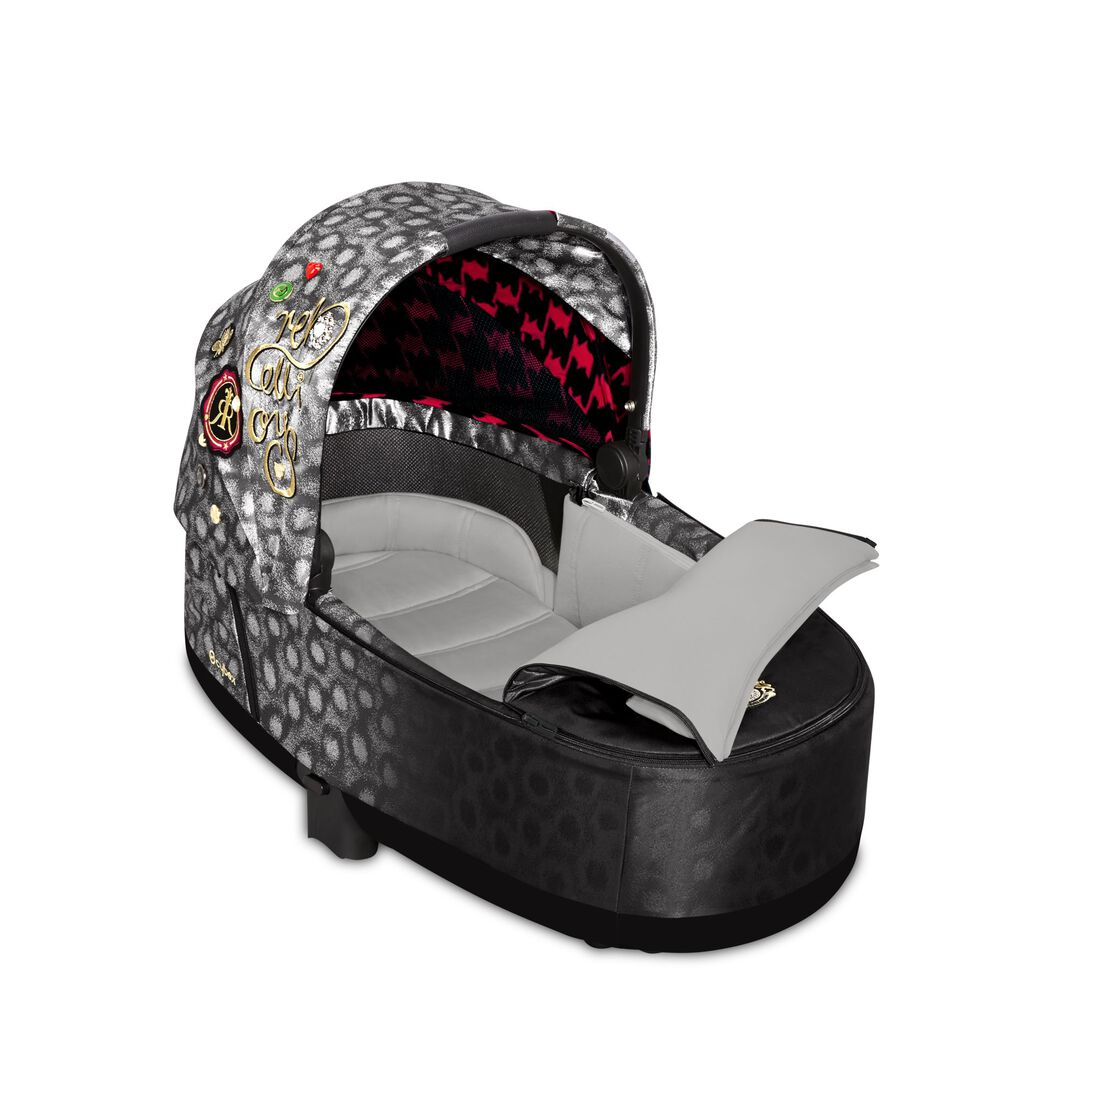 CYBEX Priam Lux Carry Cot - Rebellious in Rebellious large Bild 2